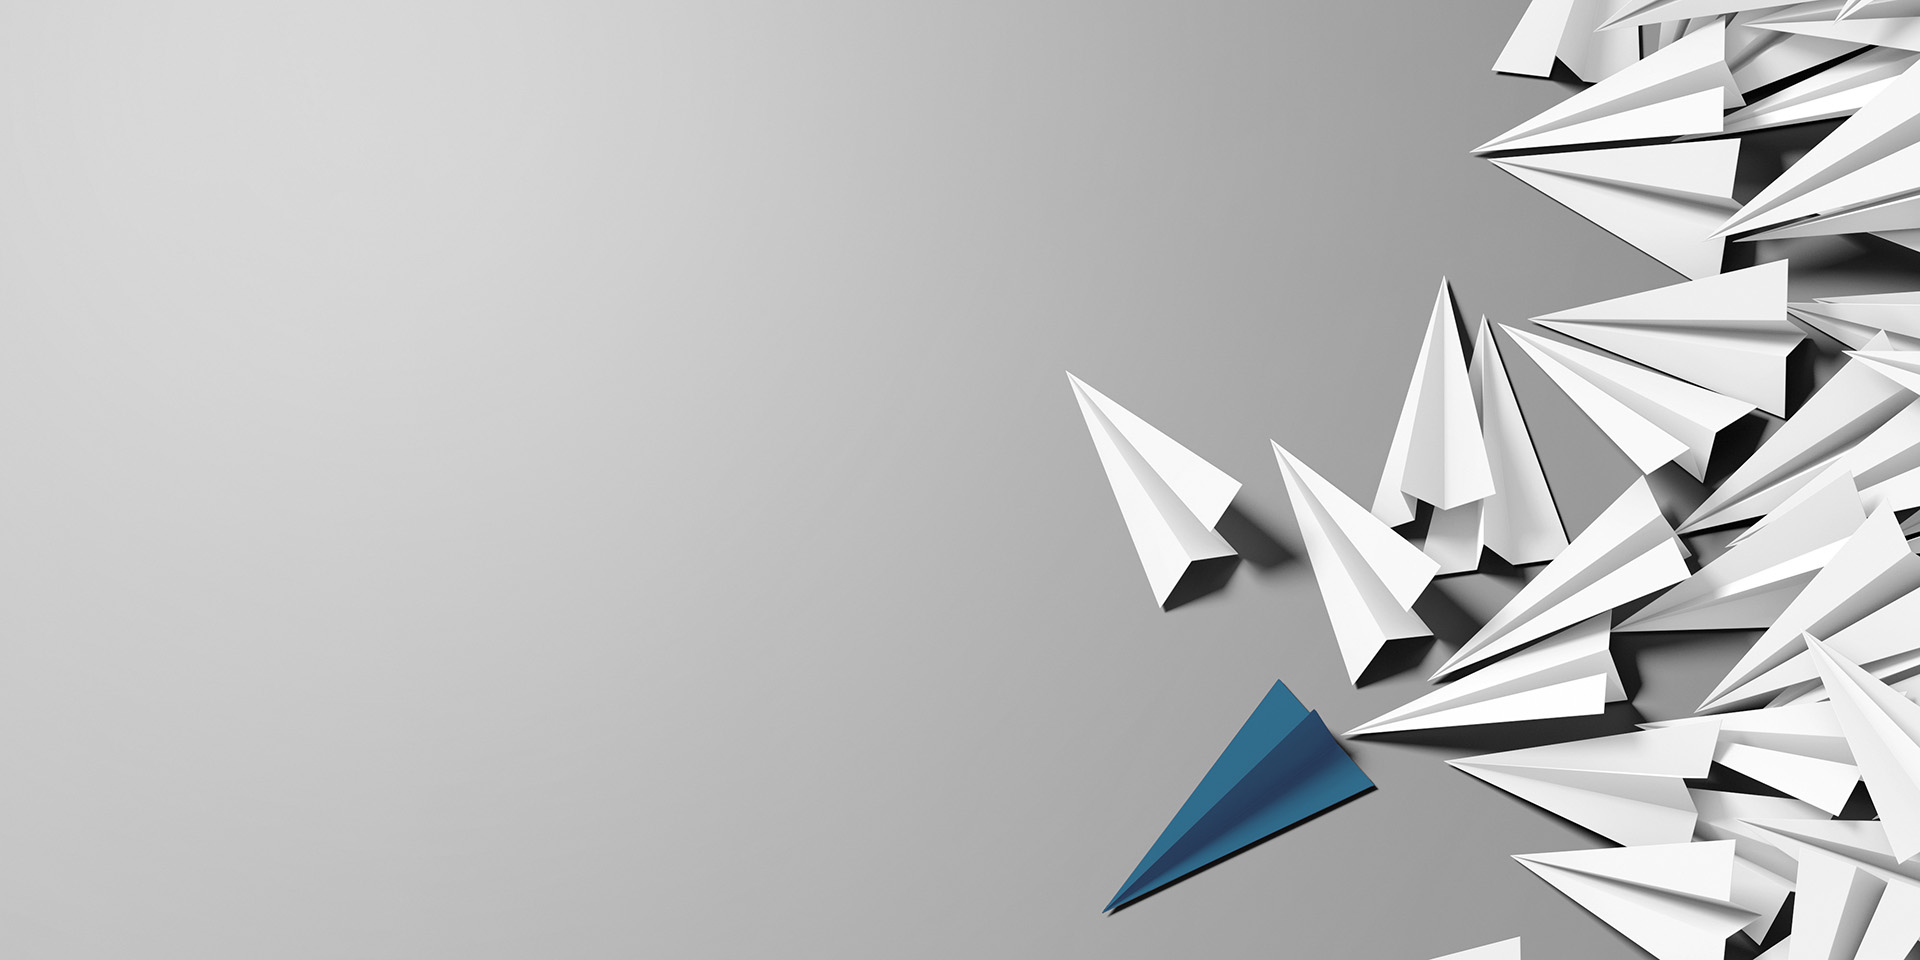 Divorce and Personal Injury Law Firms Near Me - Paper Airplanes IMG